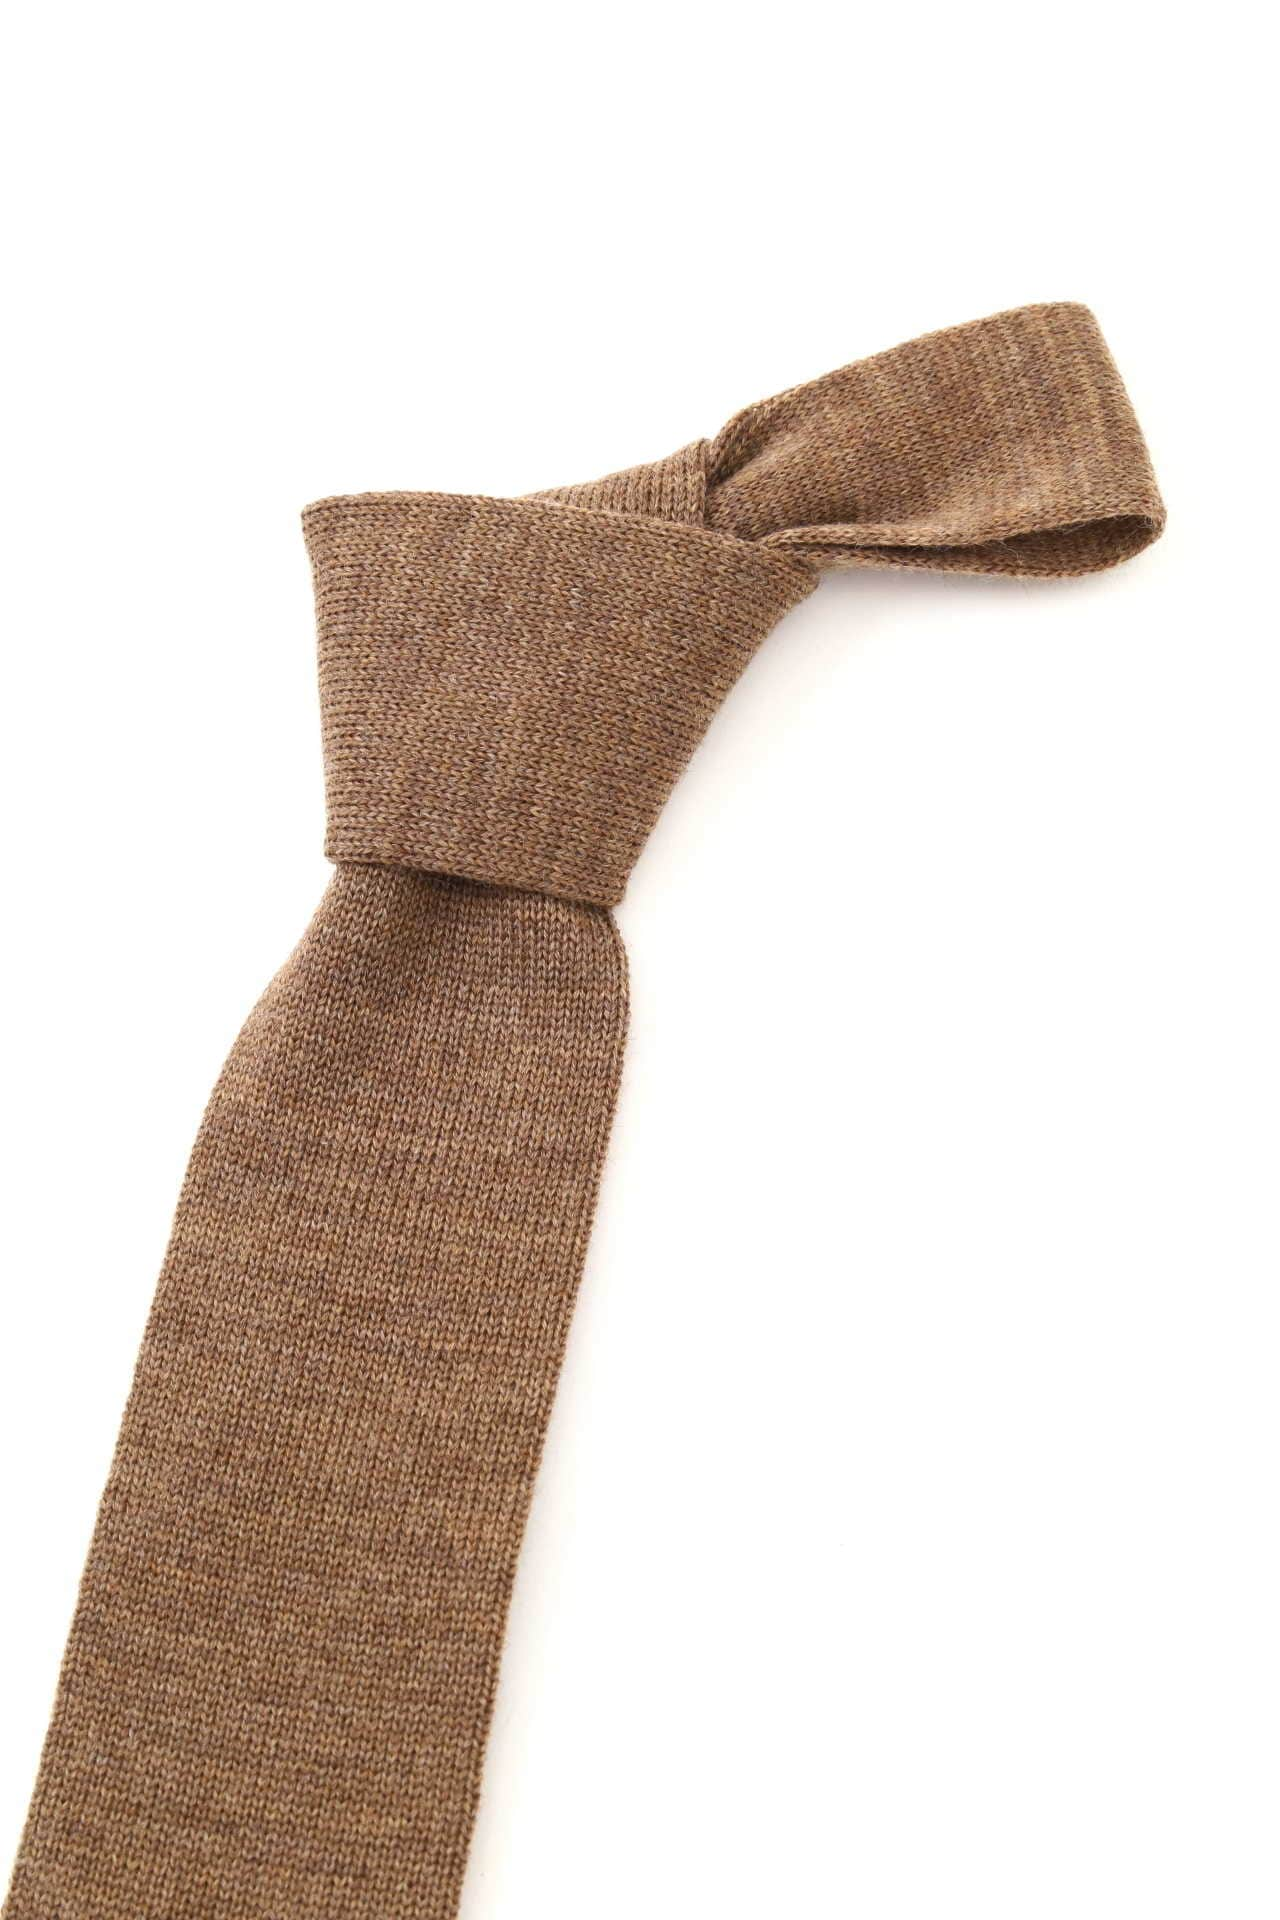 THREE COLOUR STRIPE TIE